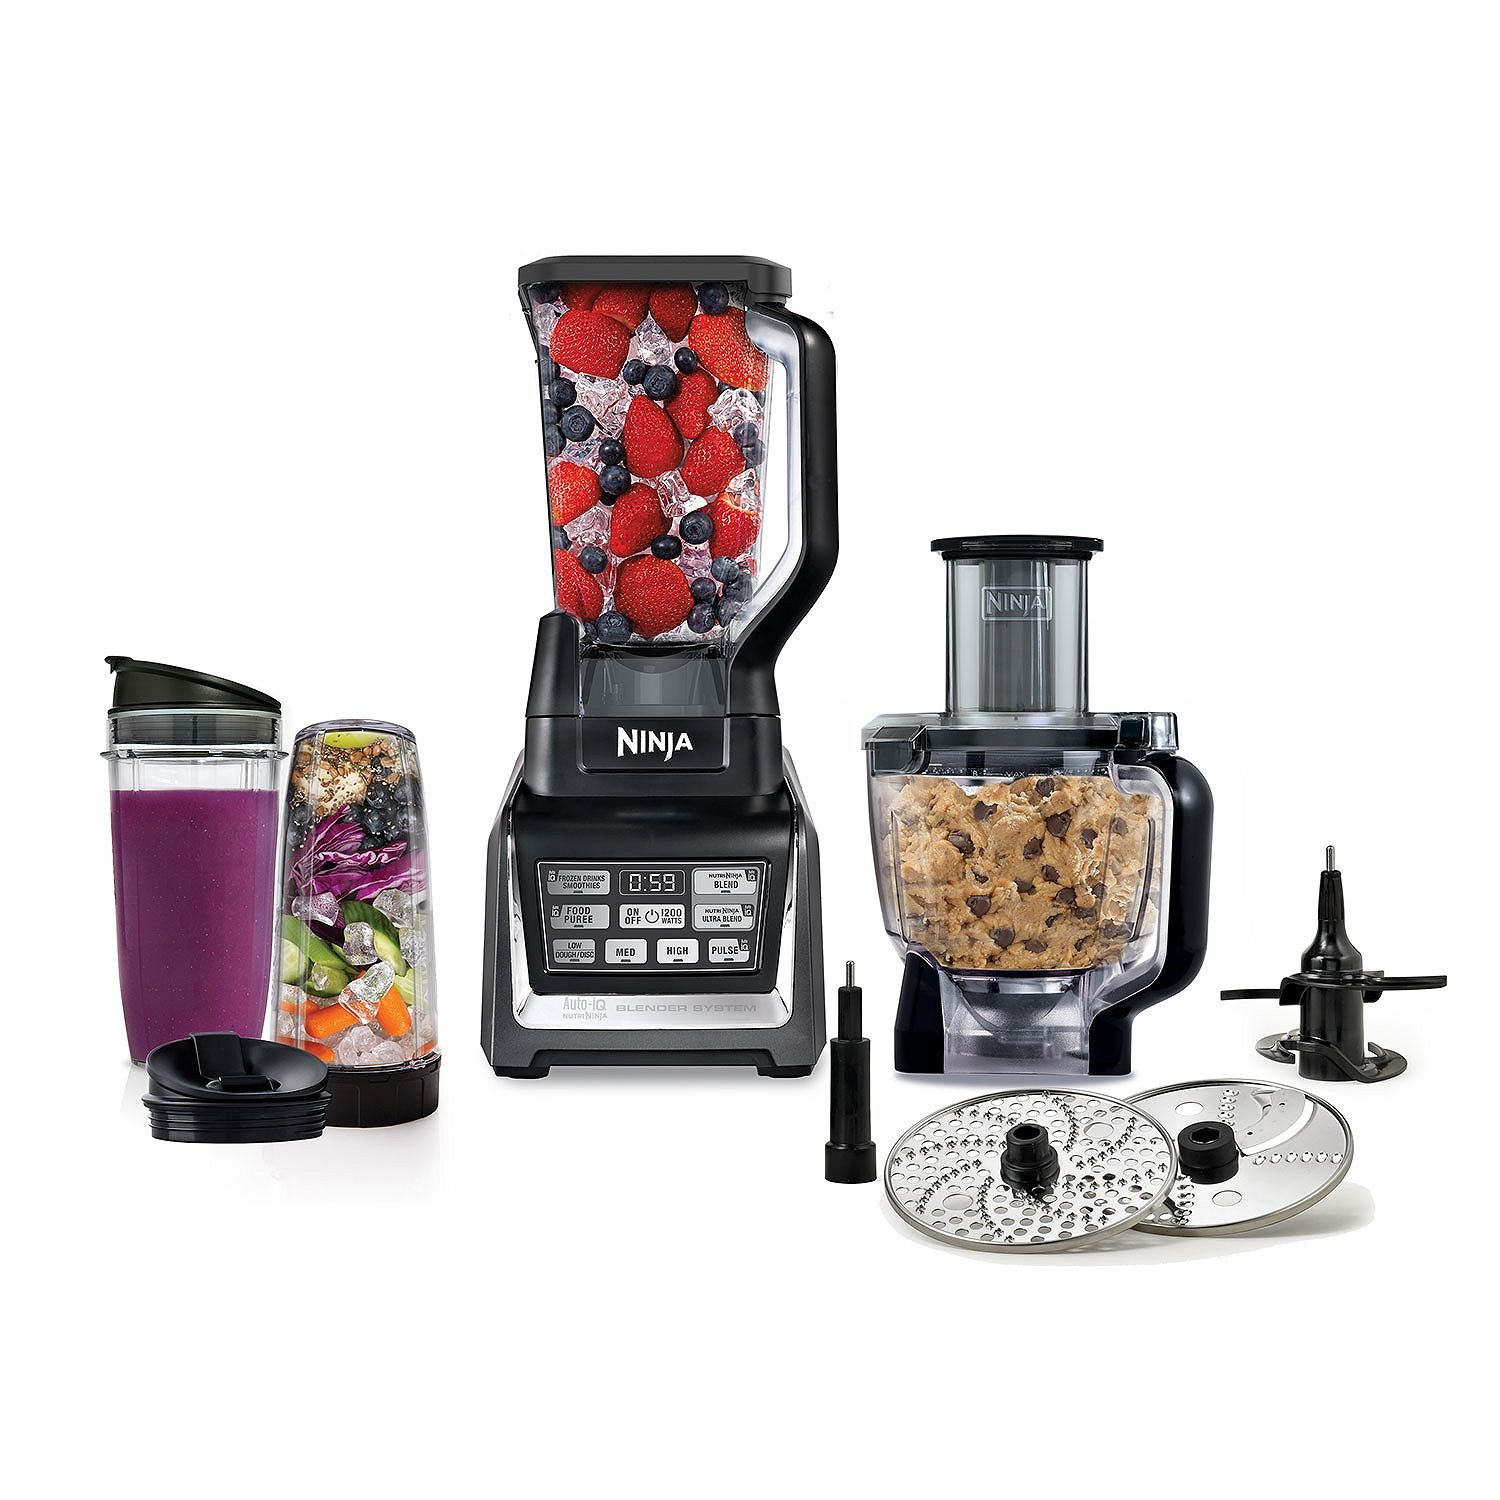 Nutri Ninja Mega 1200 Watts Kitchen System, Blending and Food Processing, 1 Base 2 Functions Auto-iQ Technology